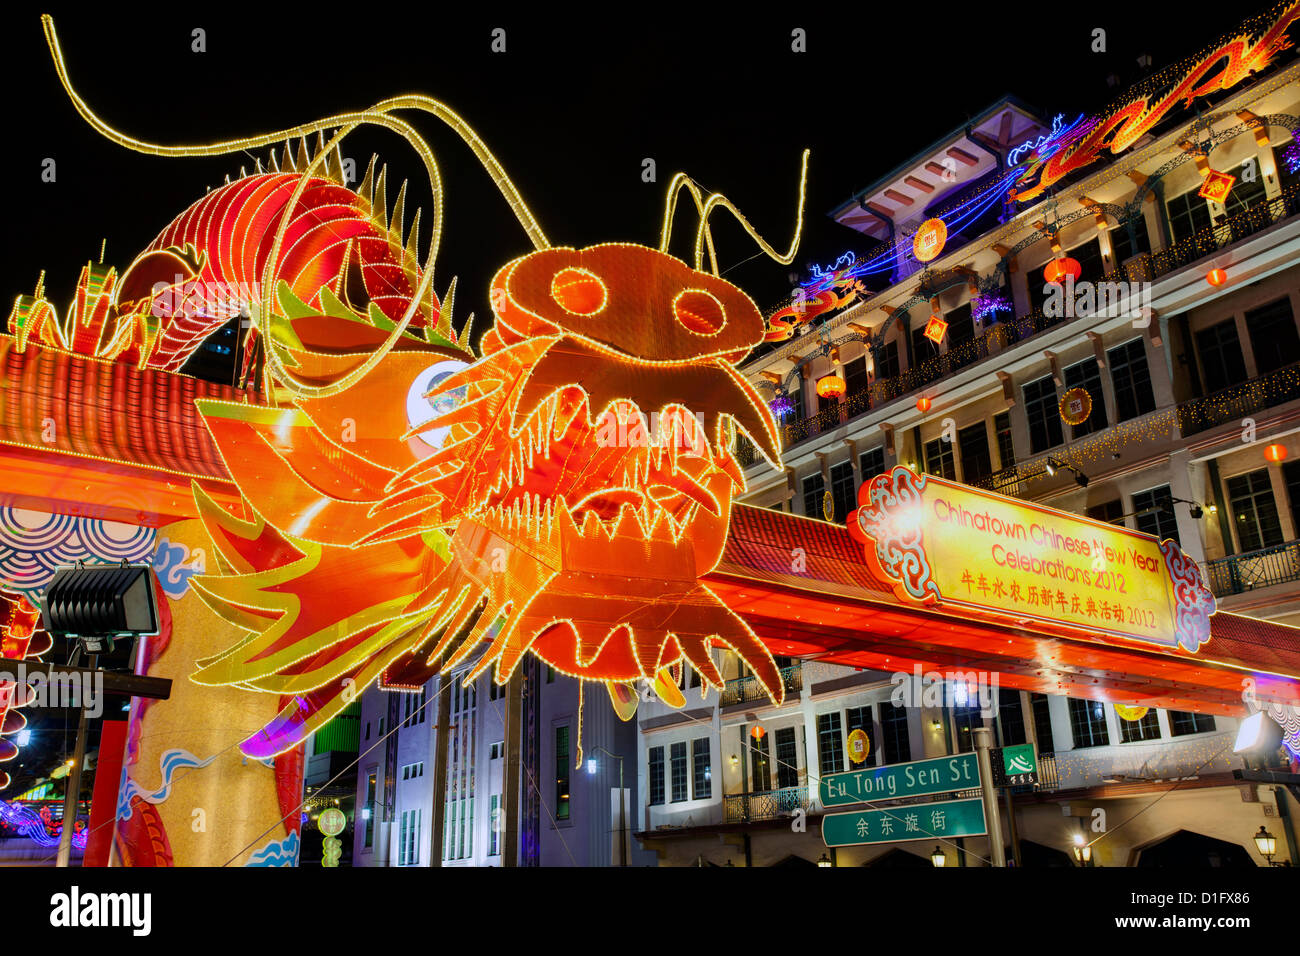 Capodanno cinese, New Bridge Road, Chinatown, Singapore, Sud-est asiatico, in Asia Immagini Stock